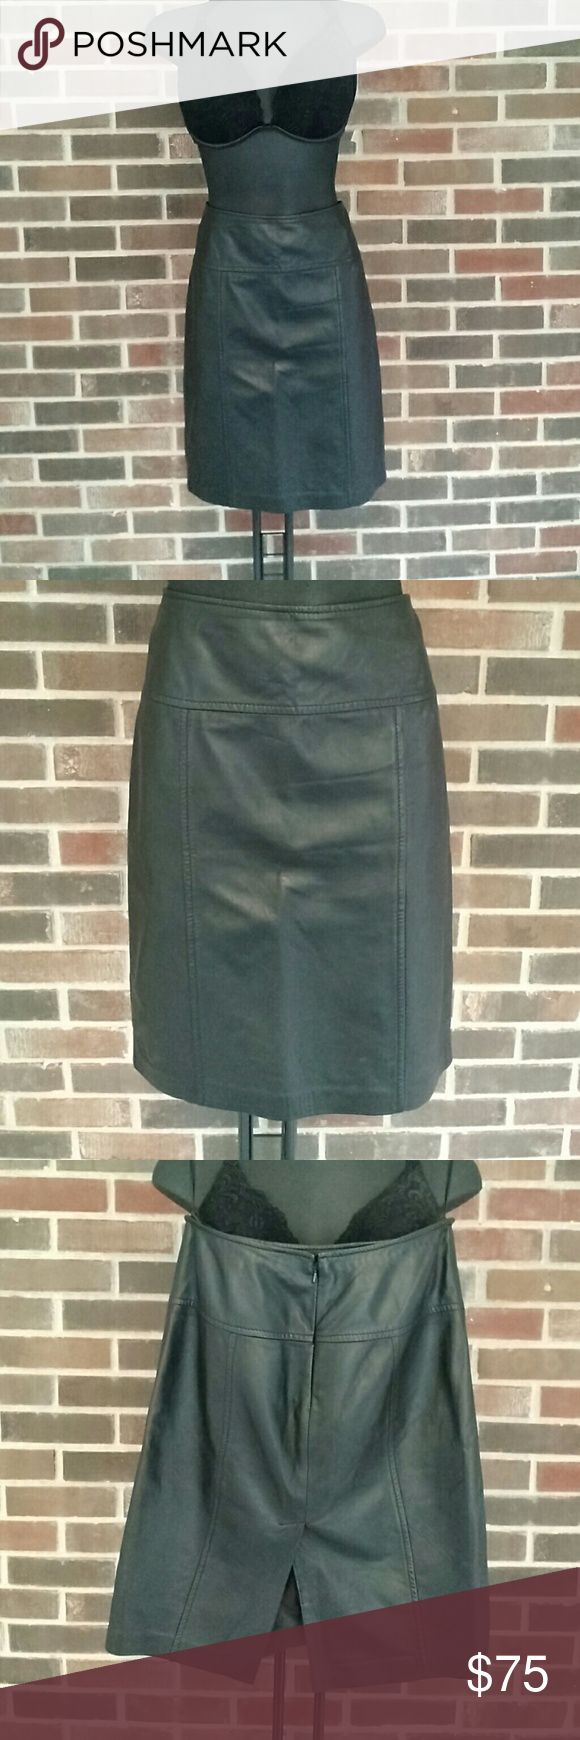 """Authentic Saks Fifth Avenue leather pencil skirt Black Saks Fifth Avenue 100%leather pencil skirt. This skirt is fierce. Light loved. Size 4, 20"""" in length. Skirts Pencil"""